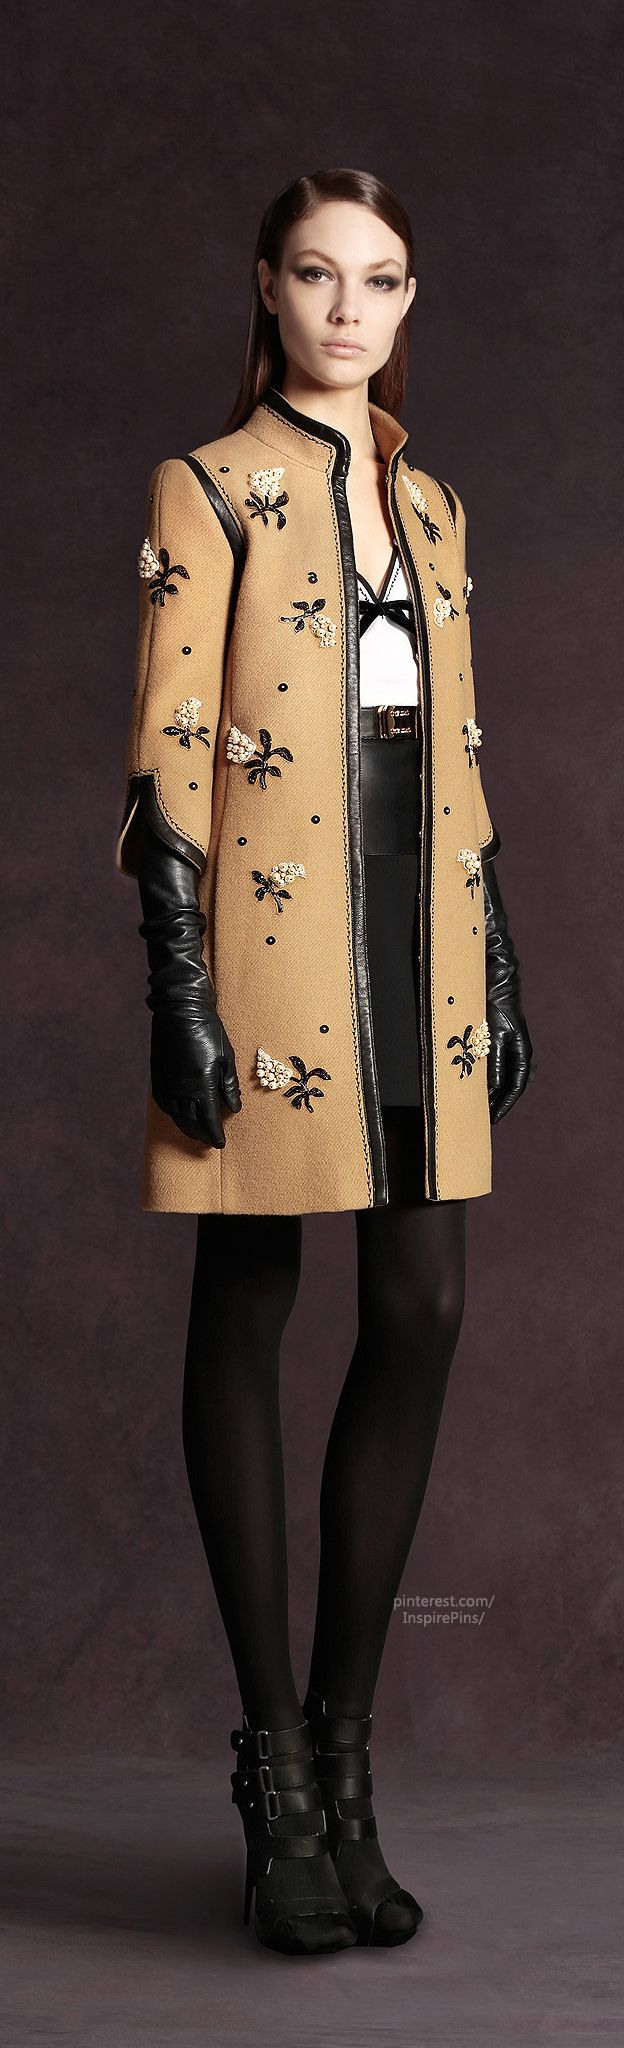 Andrew Gn Prefall 2013 Fashion Show Runway Review